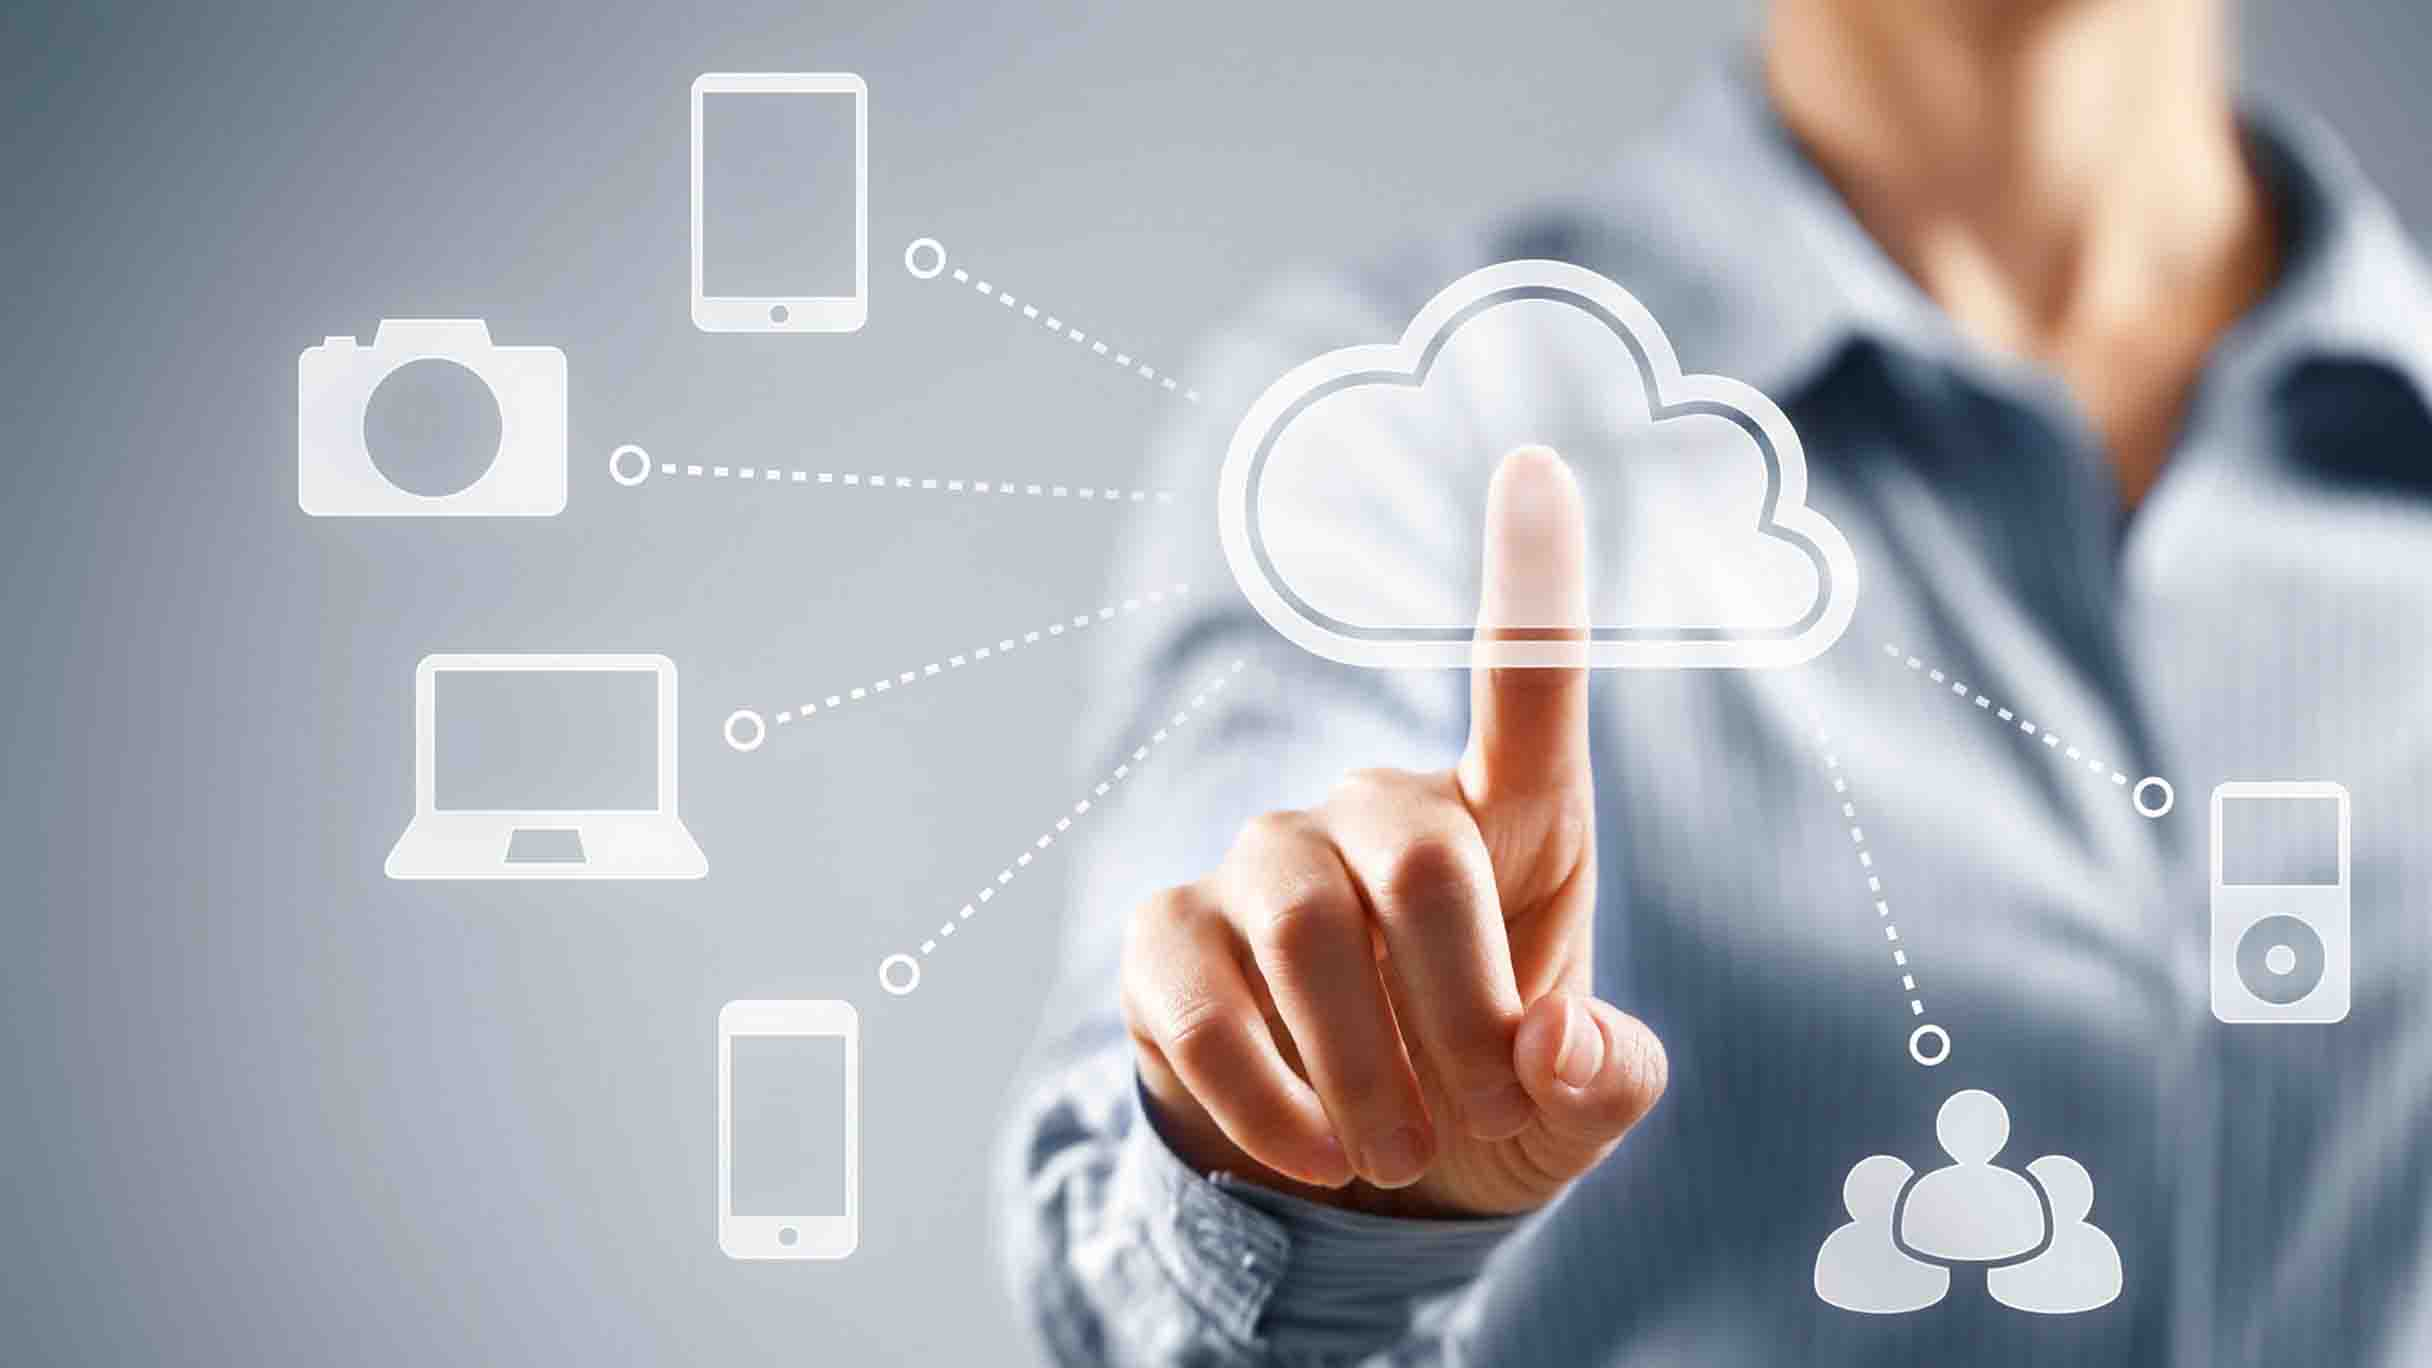 GE Digital's Smallworld can be deployed into a public cloud, such as Amazon AWS or Microsoft Azure